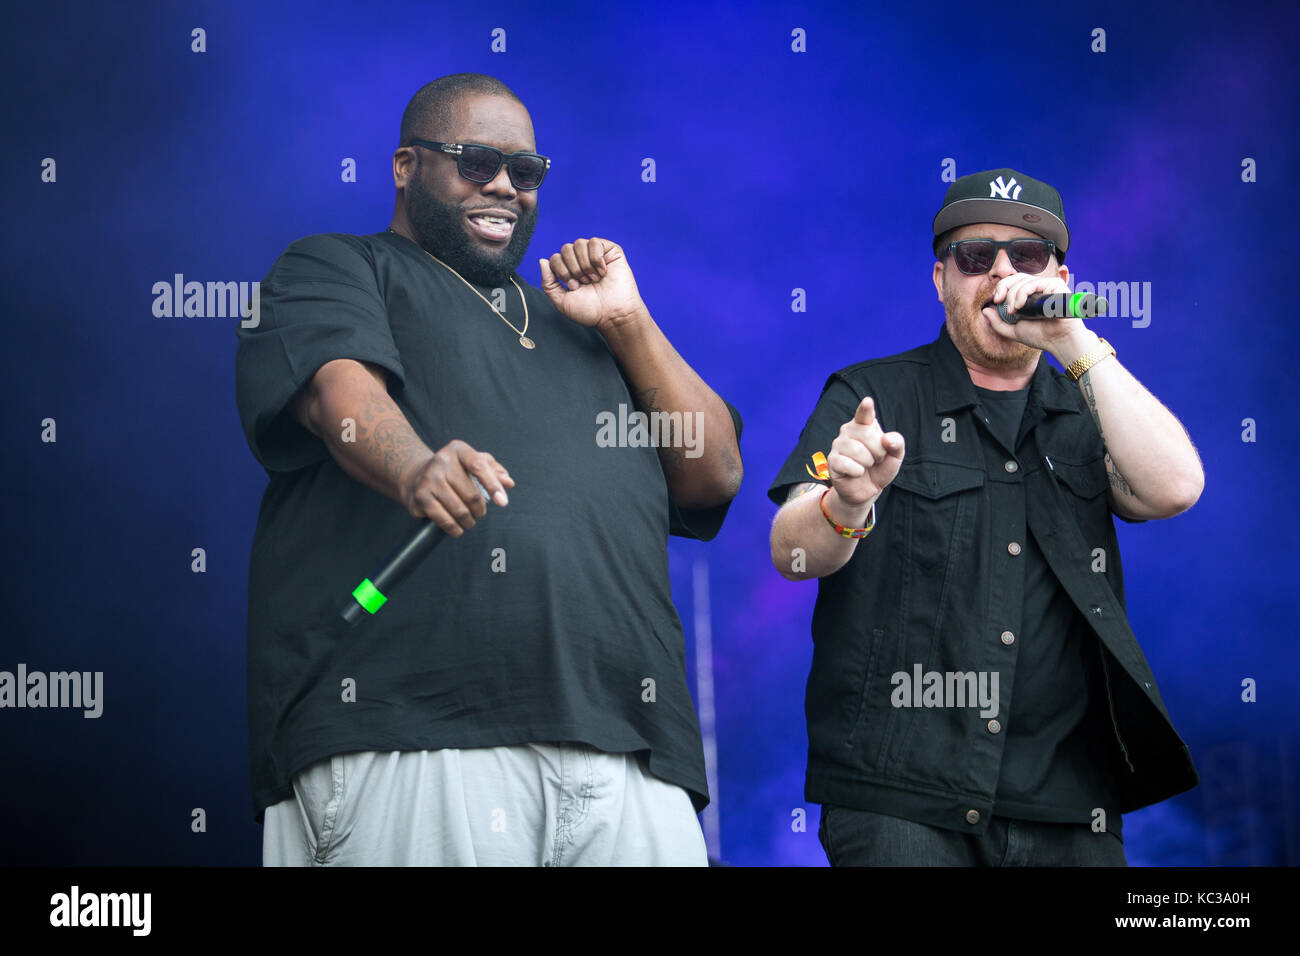 The American hip hop and rap duo Run The Jewels performs a live concert at the music festival Lollapalooza 2015 - Stock Image